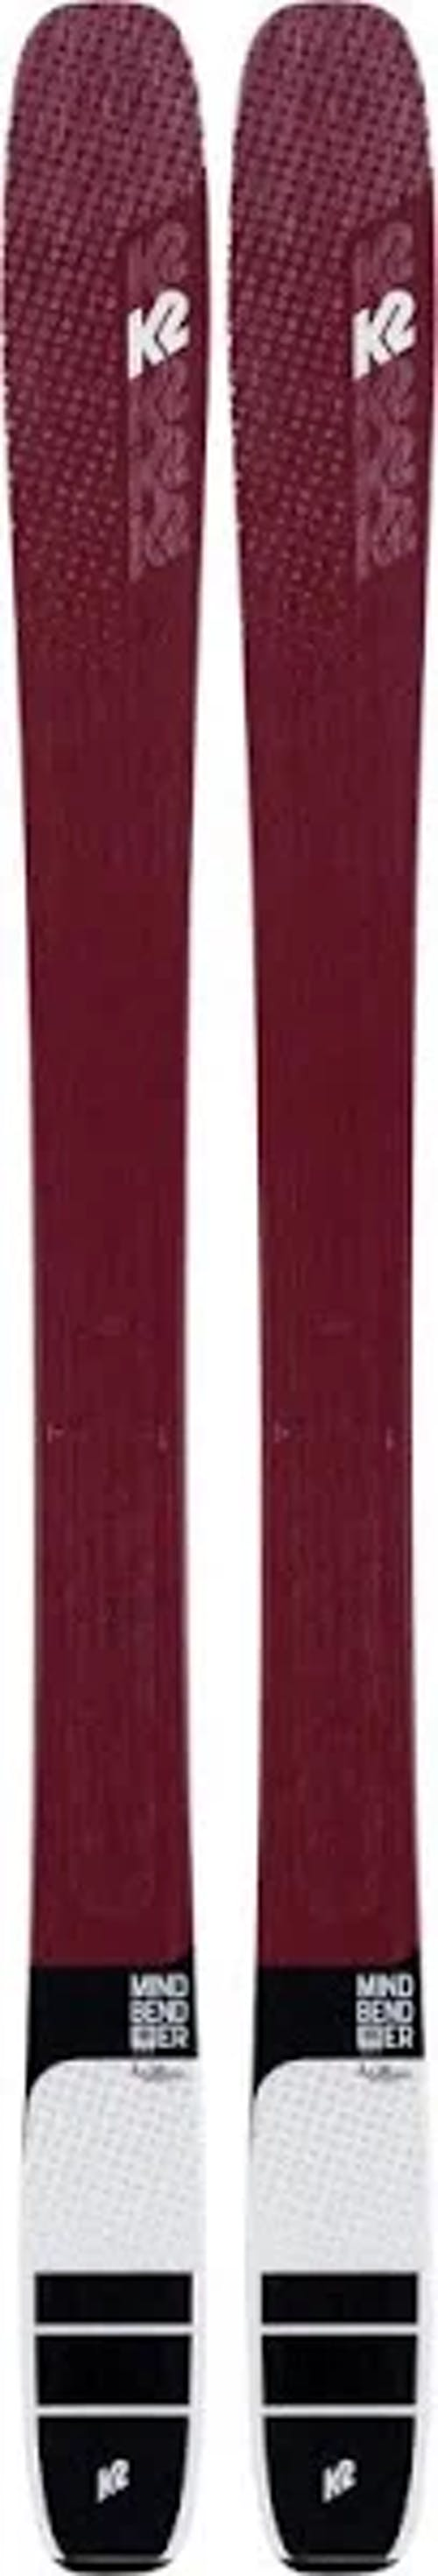 K2 Mindbender 106 Alliance Women's Skis 2020 175CM